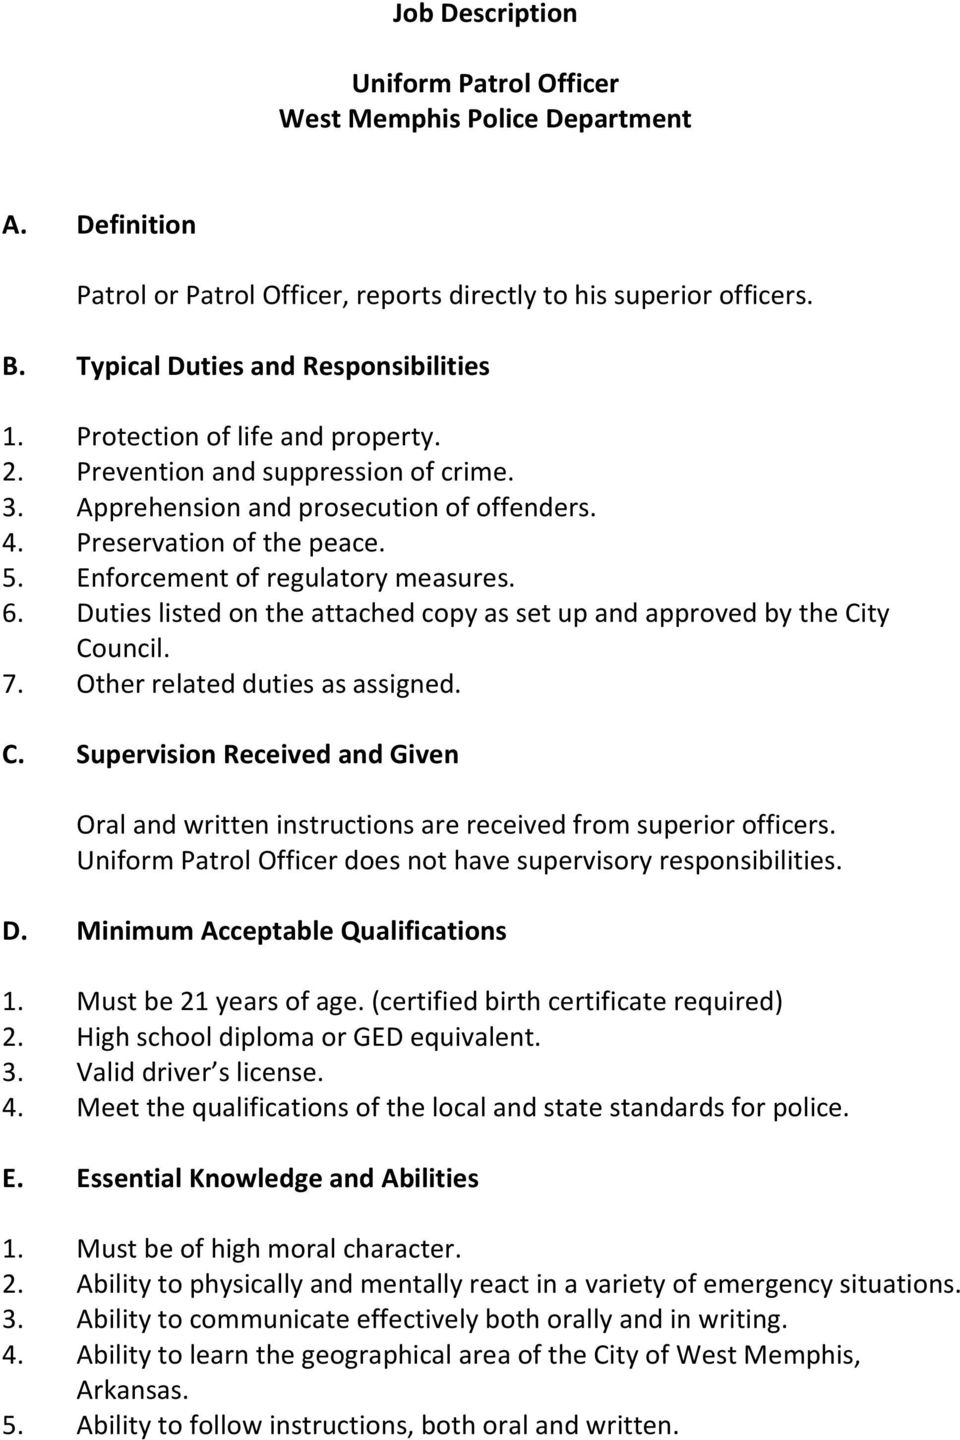 Duties listed on the attached copy as set up and approved by the City Council. 7. Other related duties as assigned. C. Supervision Received and Given Oral and written instructions are received from superior officers.